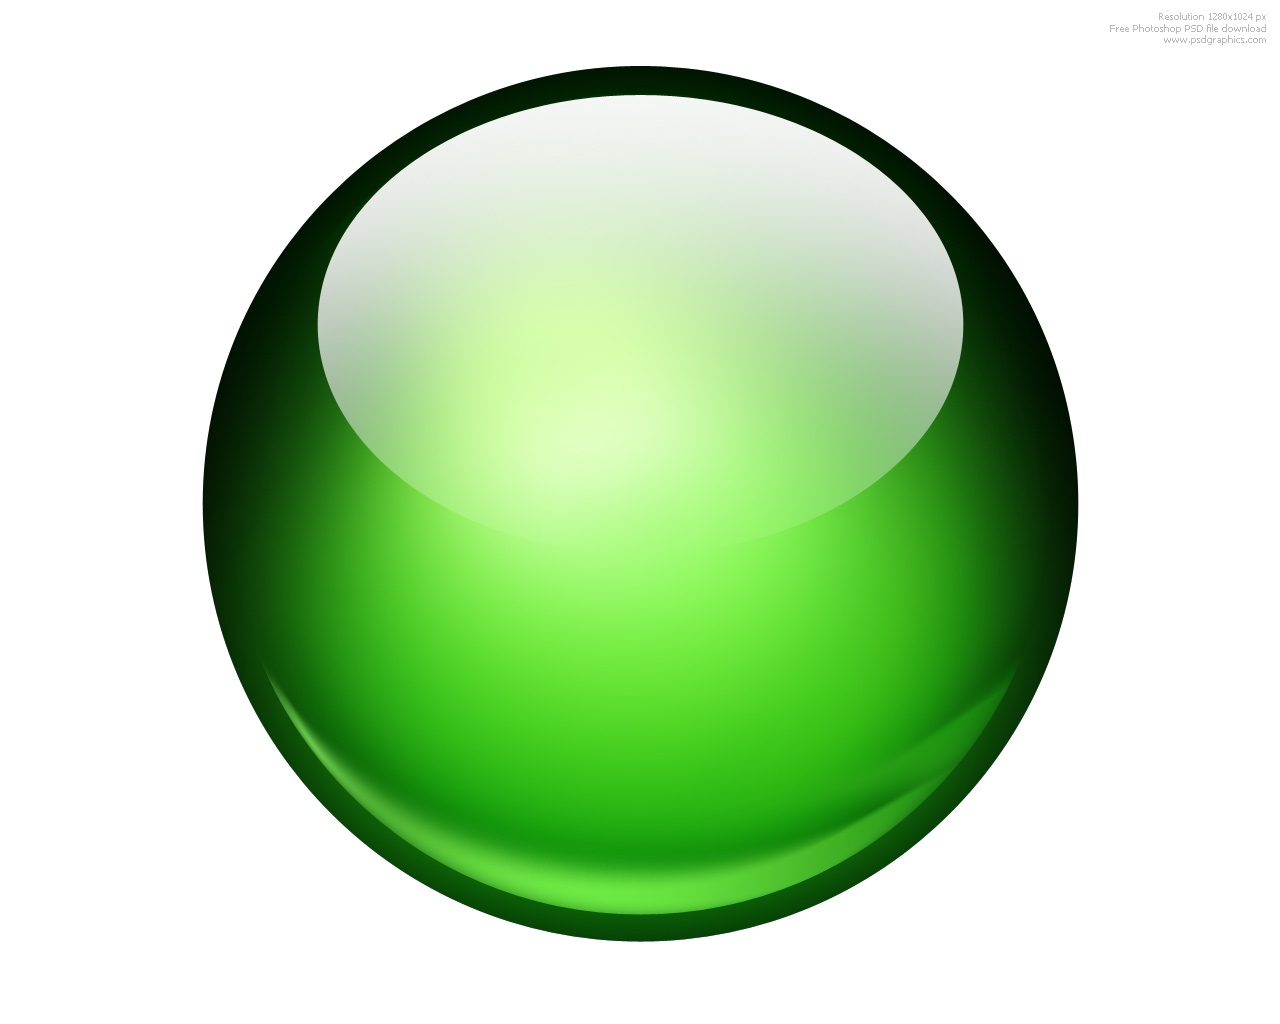 13 Green 3D Sphere Icons Images